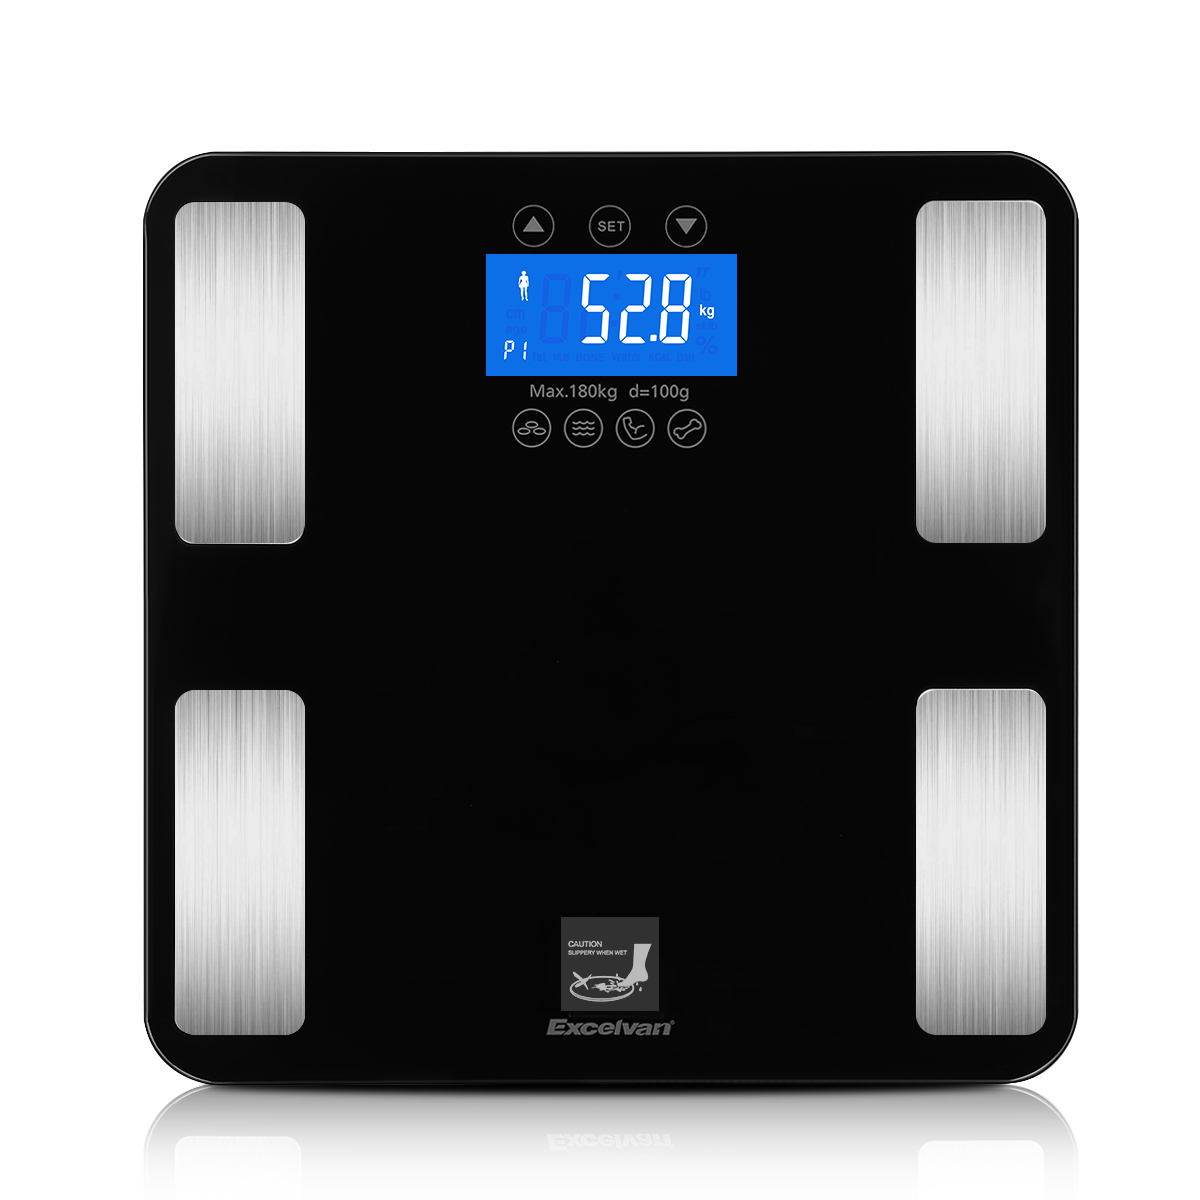 Excelvan Touch 400 lb Digital Body Fat Scale